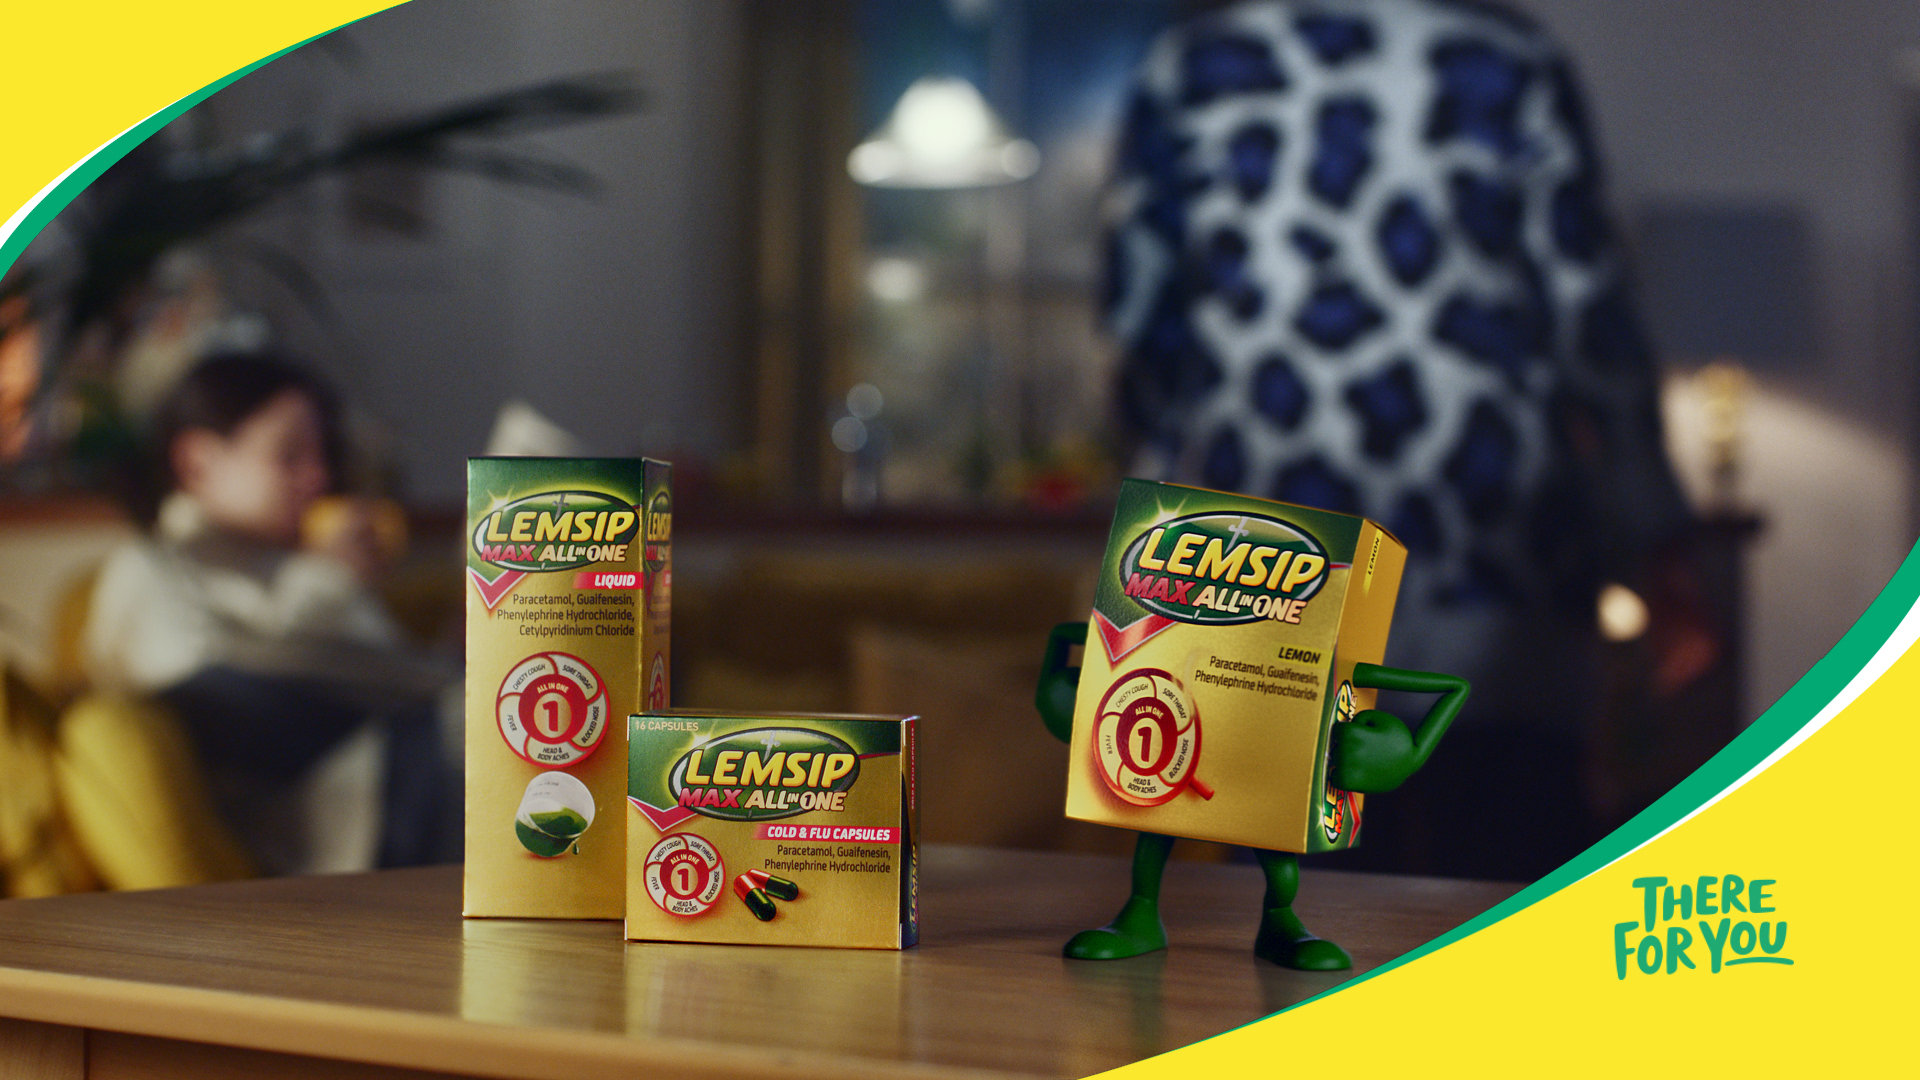 Big Buoy - New work: Lemsip gets a character revamp in new TVC